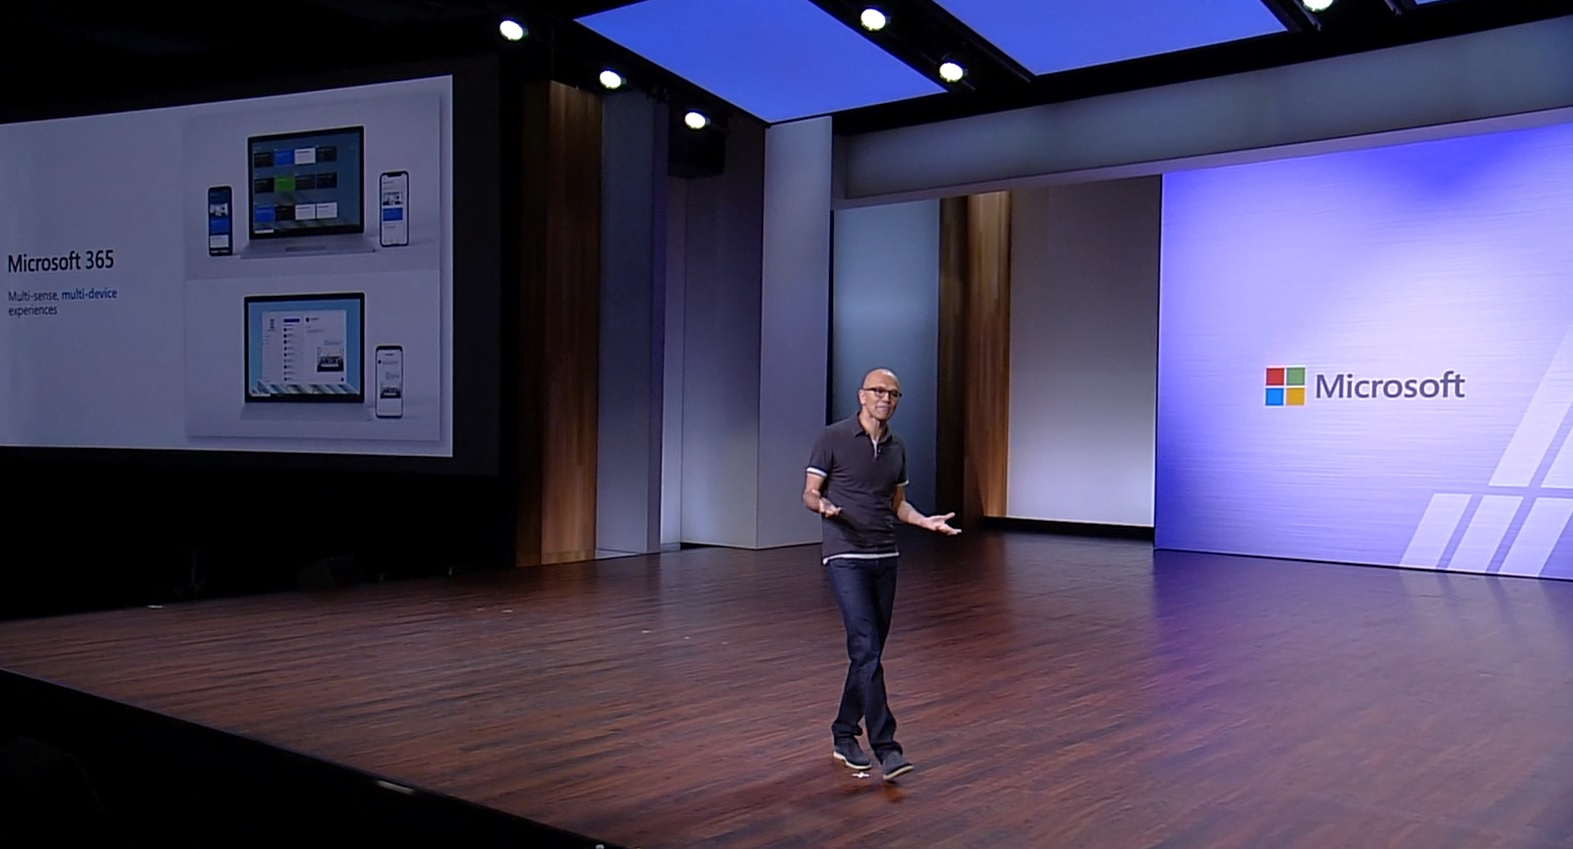 Microsoft claims that microsoft 365 is the largest productivity platform in the world, and announces new developer opportunities - onmsft. Com - may 7, 2018